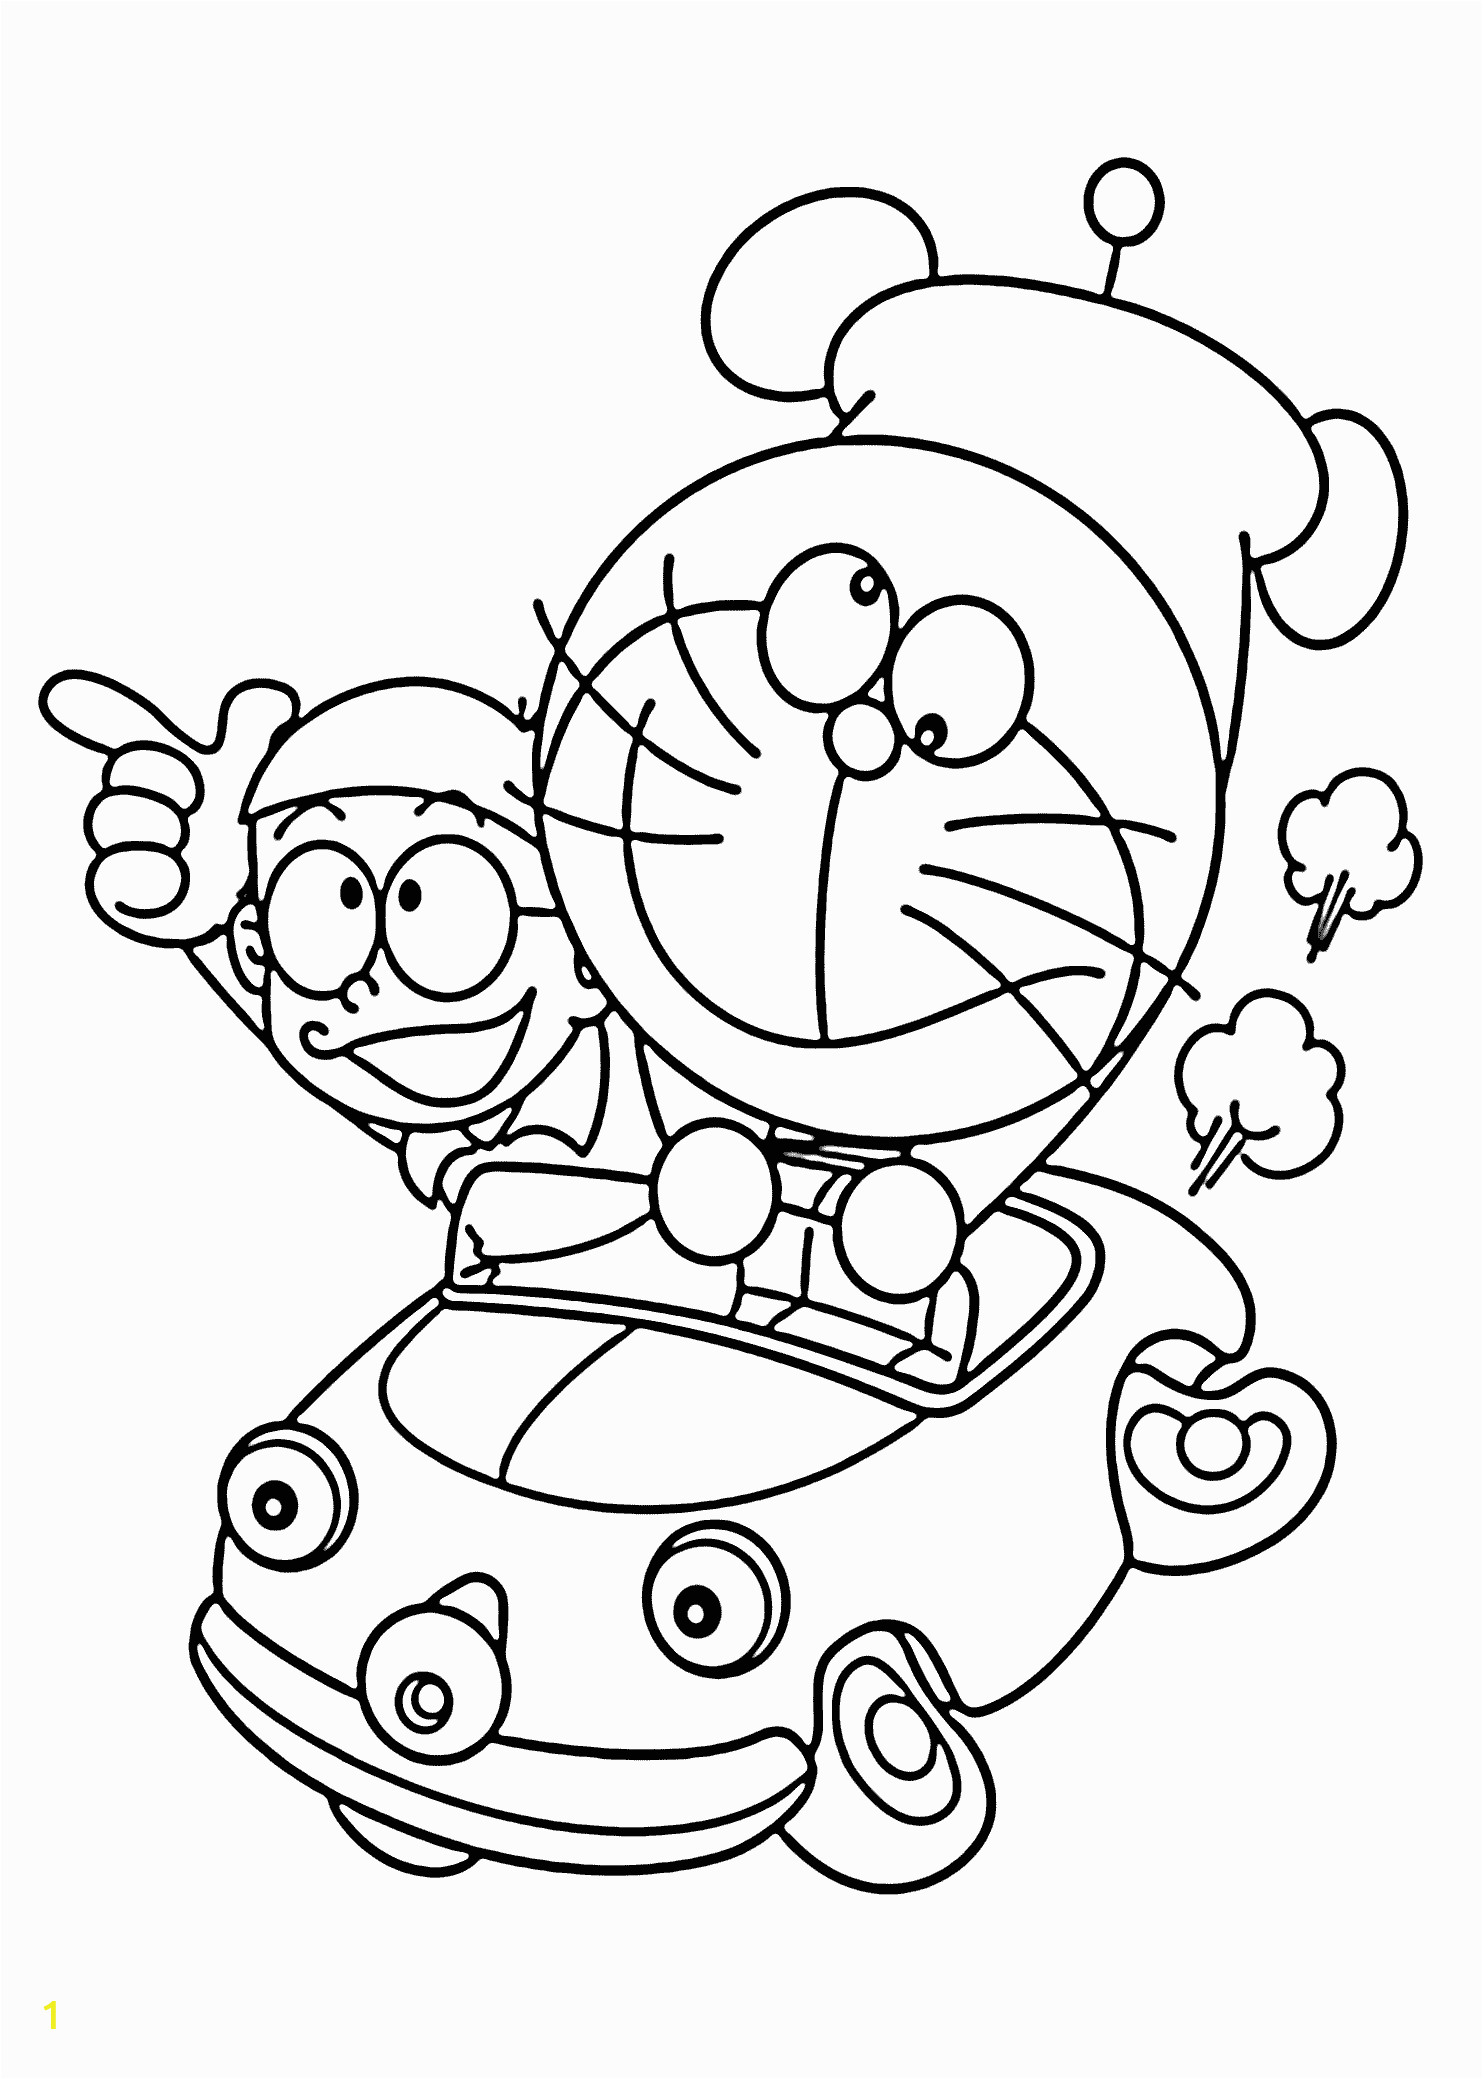 Doraemon Coloring Pages to Print Doraemon In Car Coloring Pages for Kids Printable Free